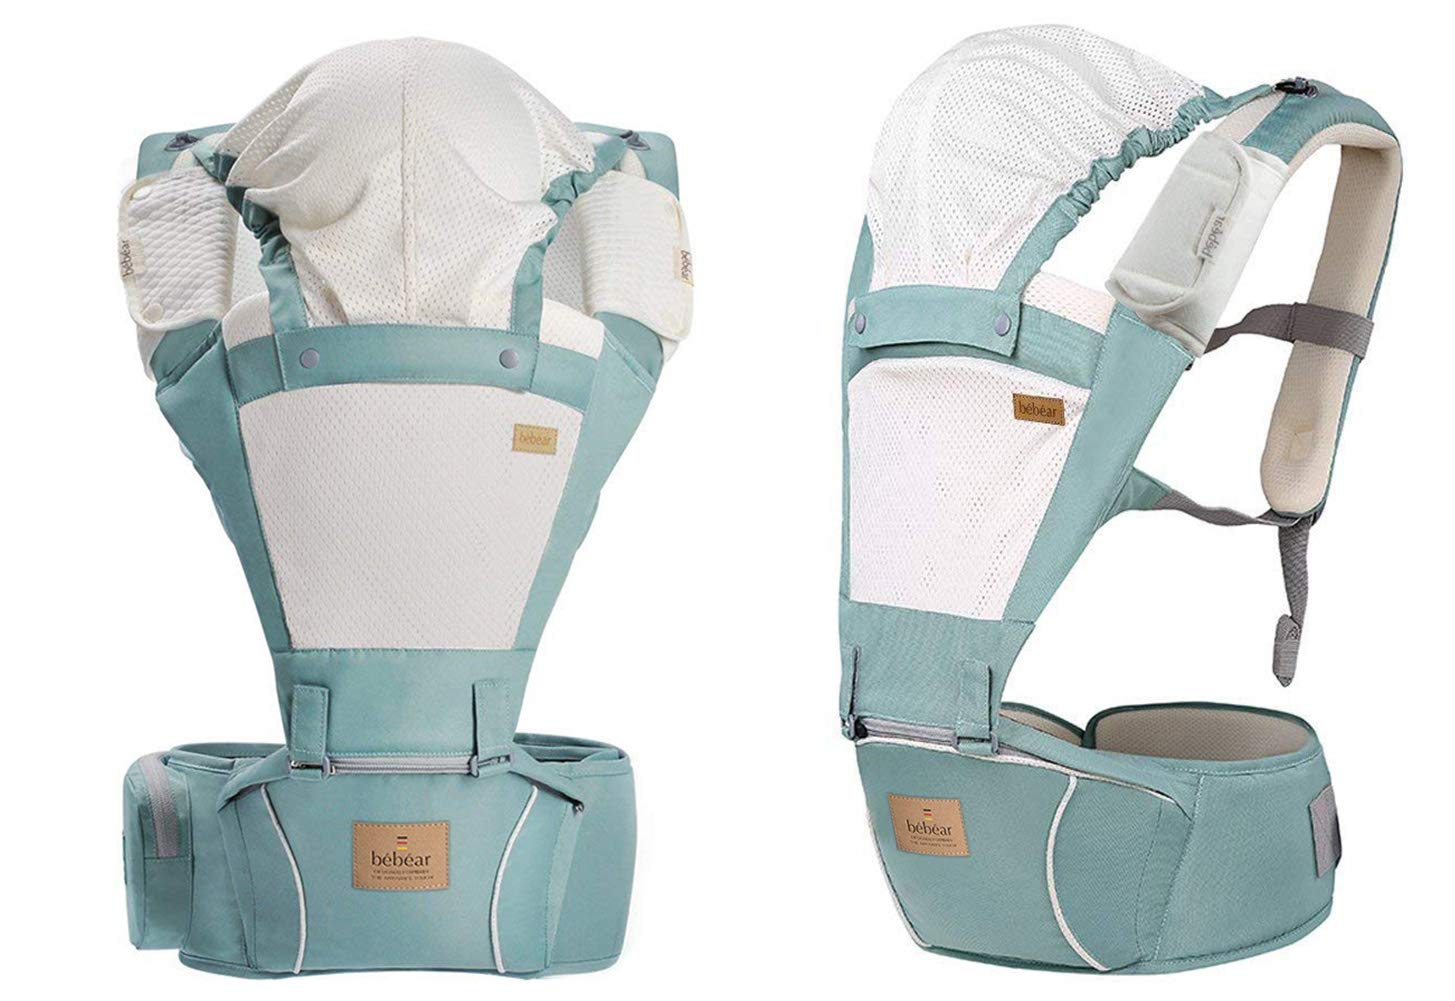 Bebamour Hipseat Baby Carrier Backpack 5 in 1 Carry Ways Carrier Sling (Light Green) bebear ▲VIDEO --- Know more details by YOUTUBE by searching 'Bebamour Baby Carrier Hipseat'. Gift-Box Packaged. Bebamour offer 90 days money back Guarantee! Quality problems with our baby carrier occur within this period will be offered a replacement. ✔ PROMISED QUALITY AND FABRIC - The baby carrier is made with 100% polyester with breathable cotton make baby feel comfortable and cozy. (If you have any questions in using baby carrier, pls don't hesitate to contact us. ✔ ERGONOMIC DESIGNED - Although it is a baby carrier hipseat, it also is designed according to baby's growth. Suit for baby who is 3-36 months and whose capacity is between 0-33lbs (14.9KG). 2